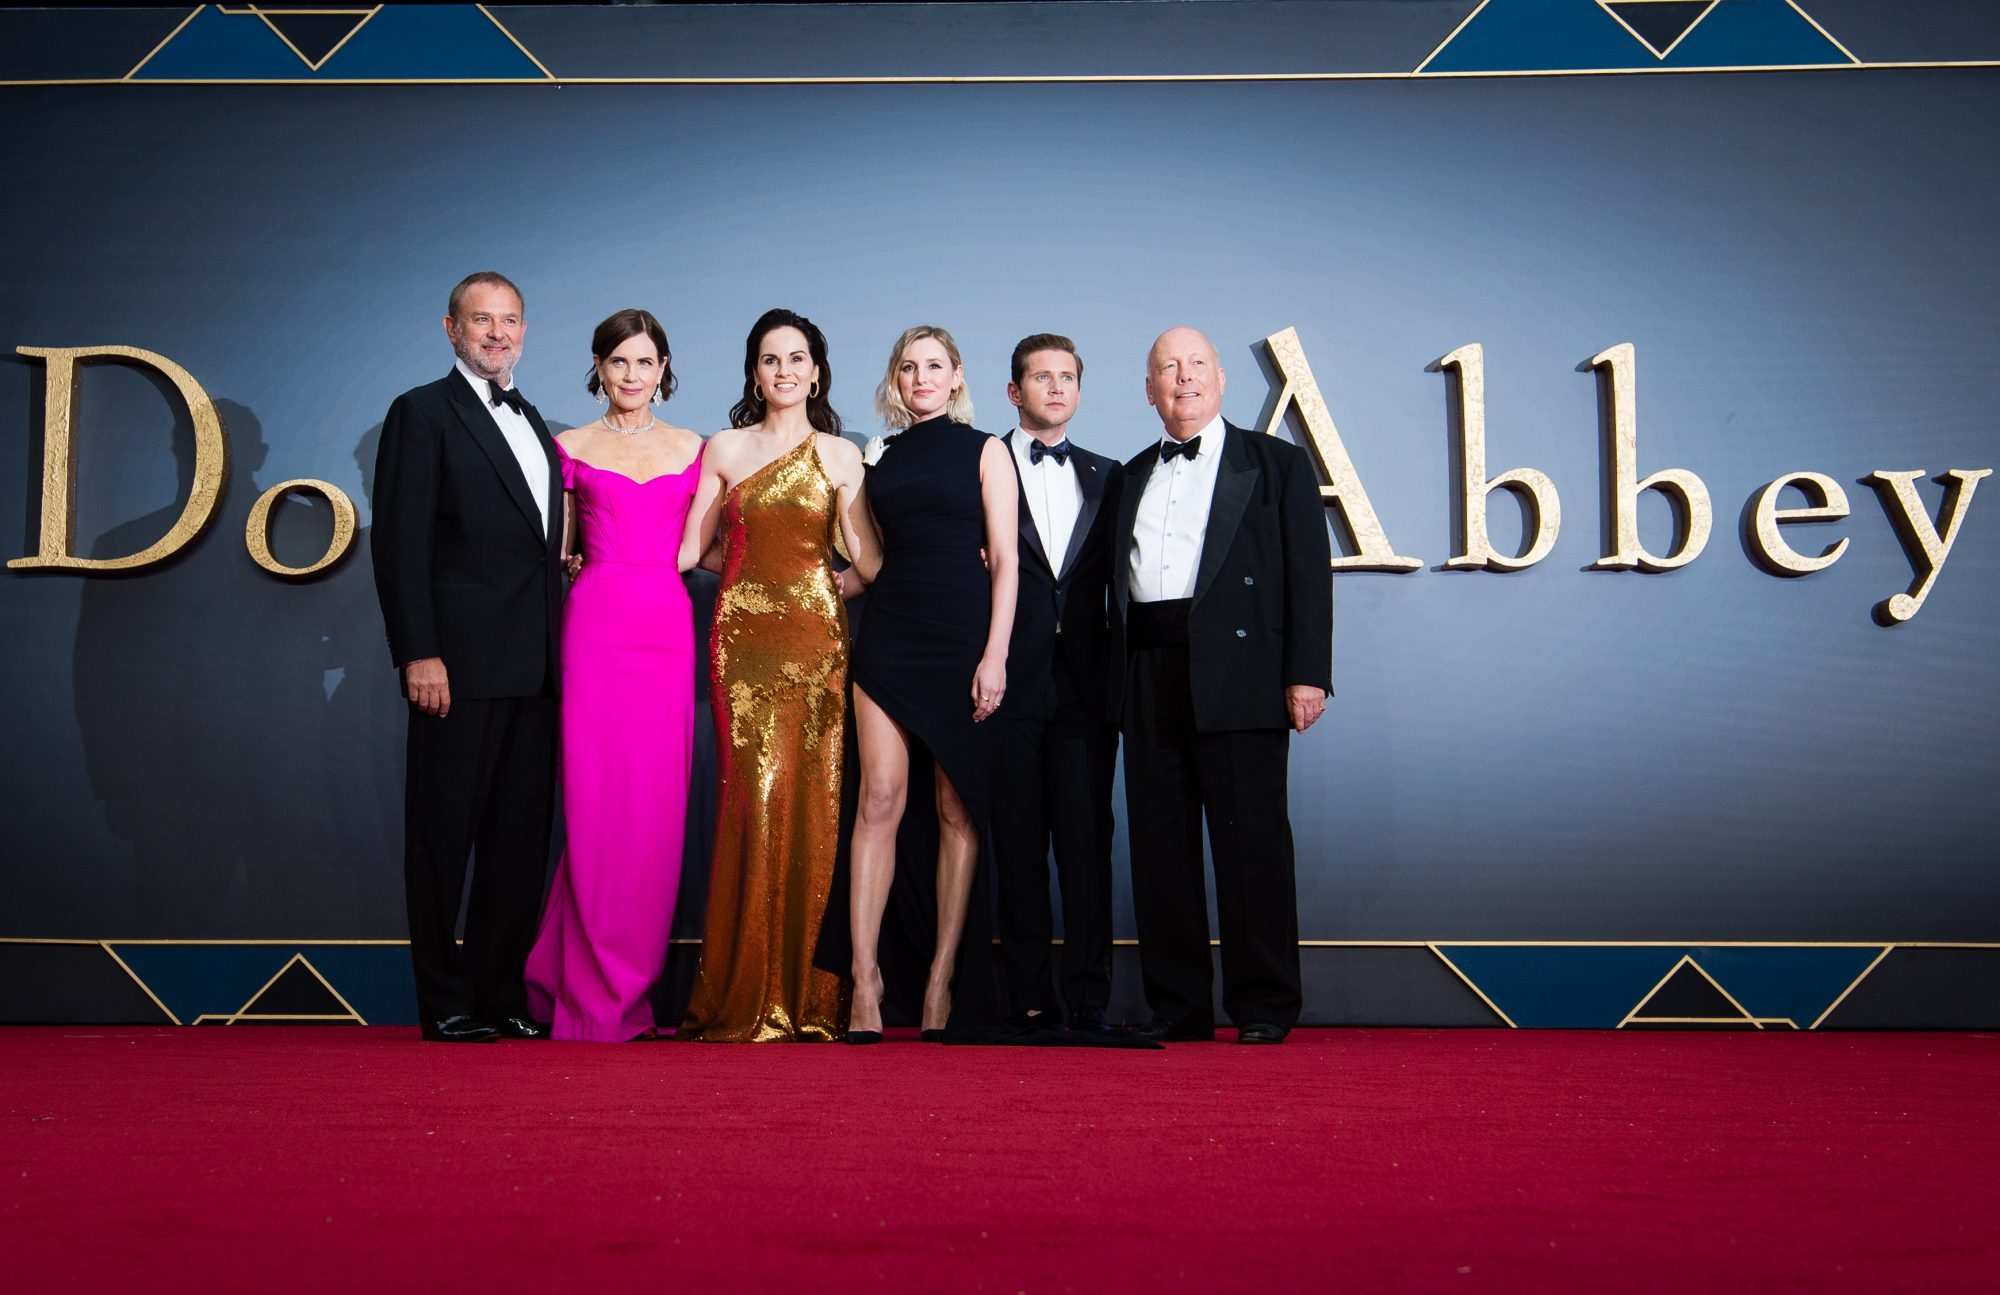 Downton Abbey Red Carpet Premiere